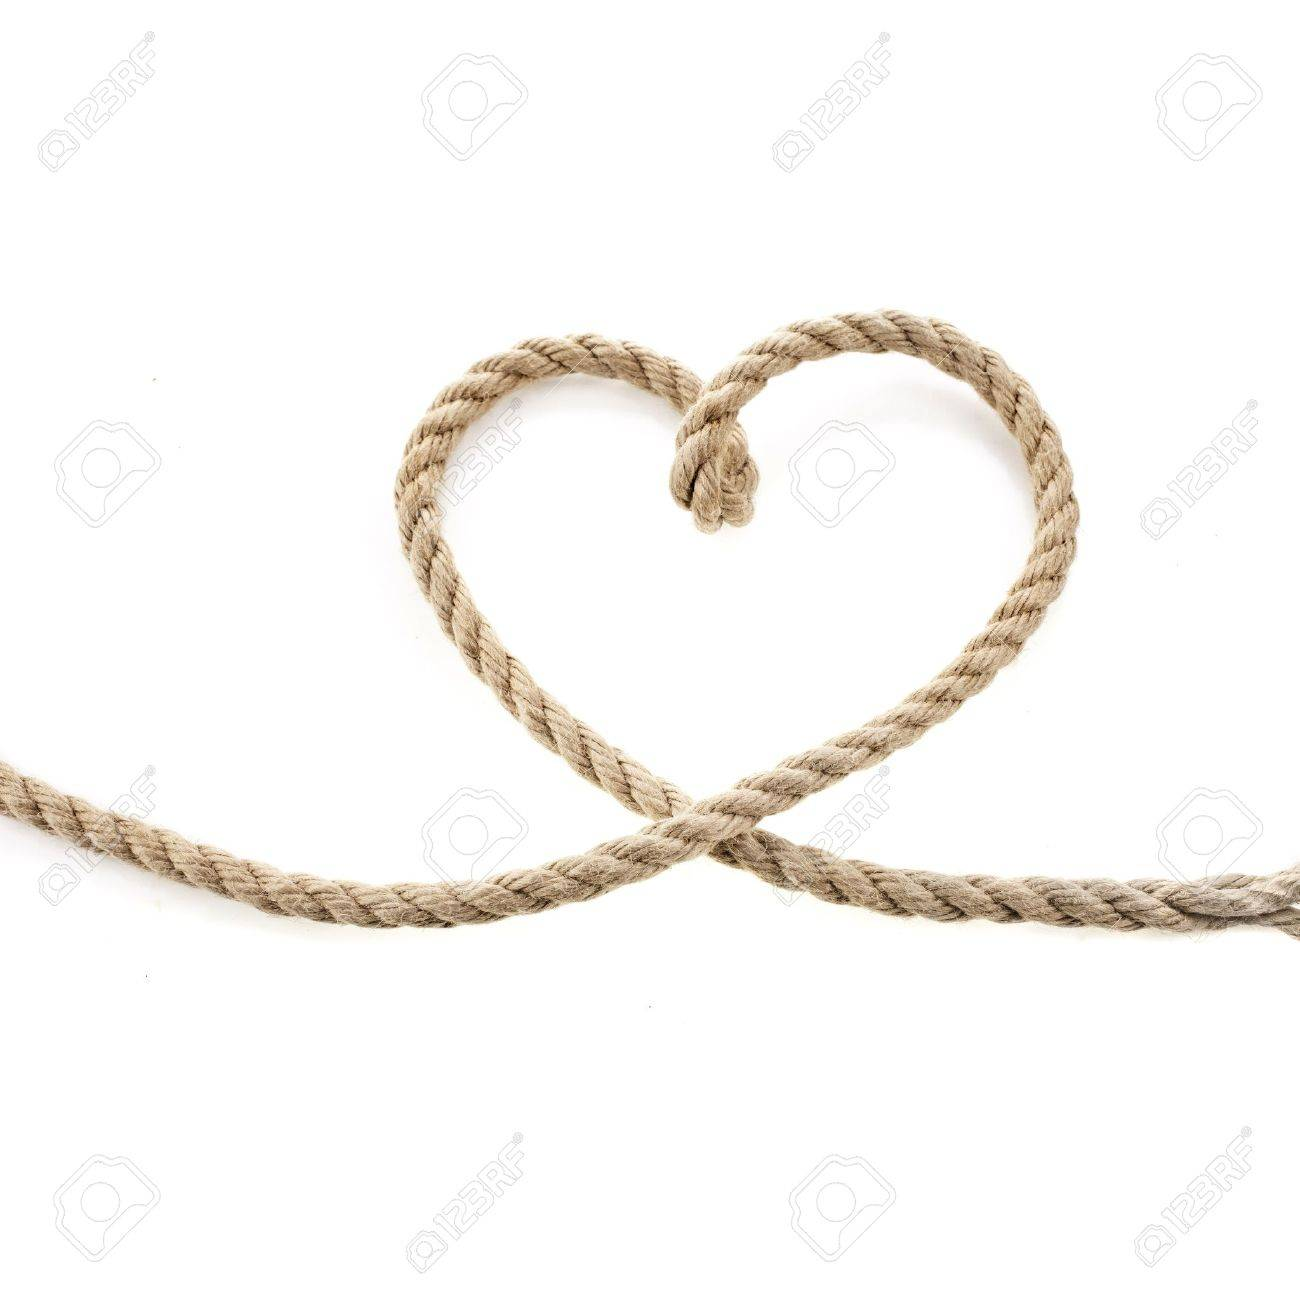 Heart Shaped Knot on a Jute rope isolated on white background - 20136740